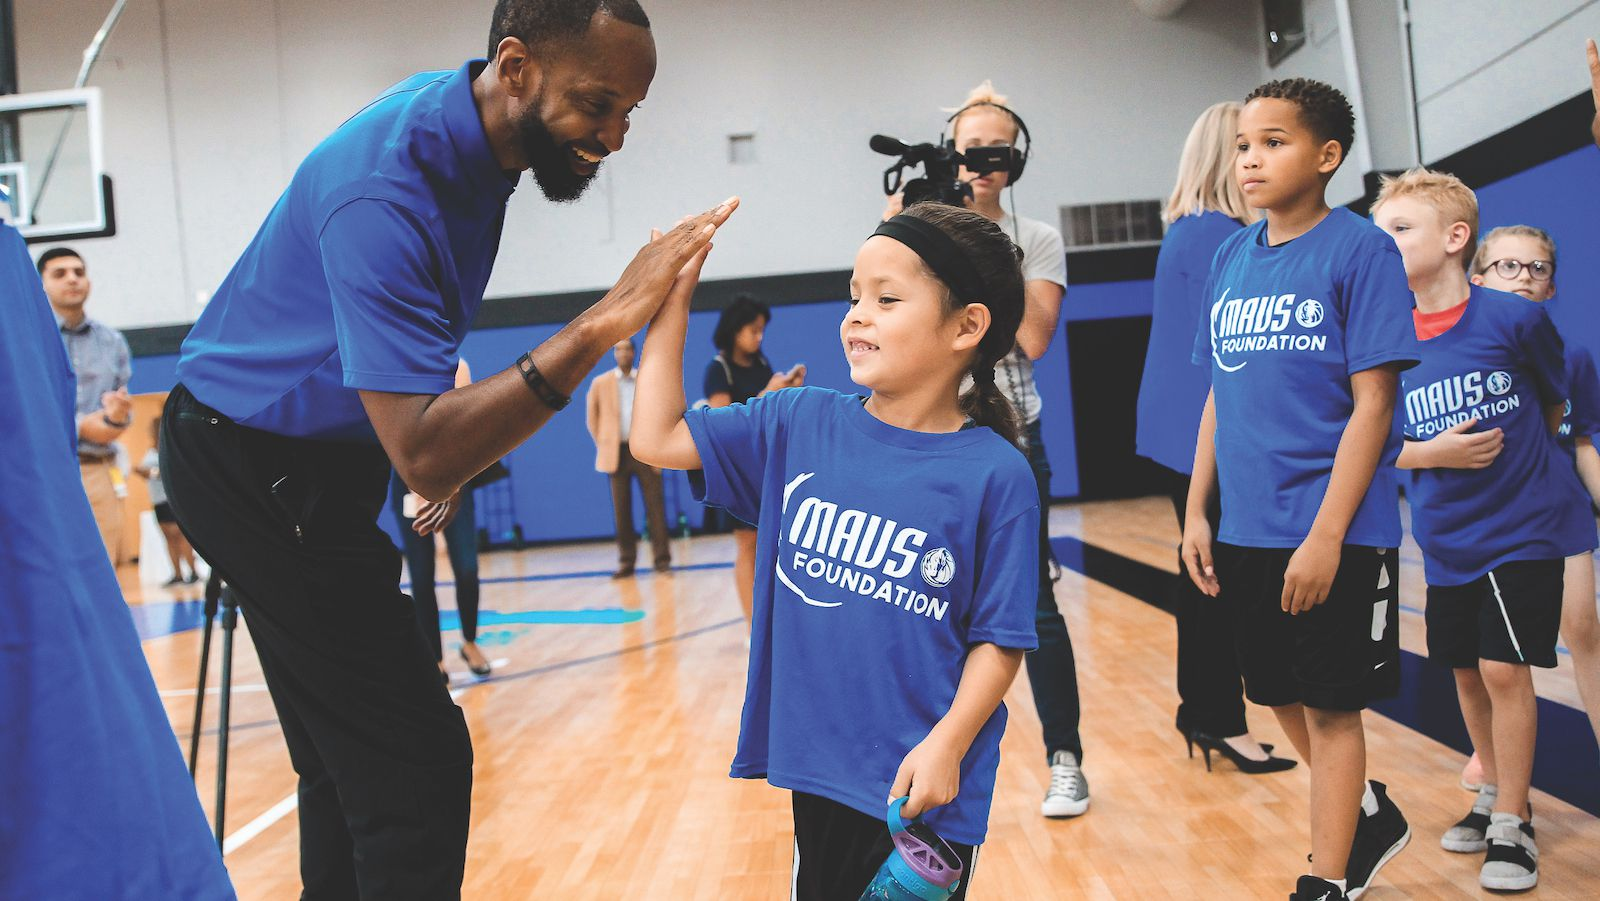 Building basketball courts across North Texas is just one way the Mavs Foundation empowers young people.